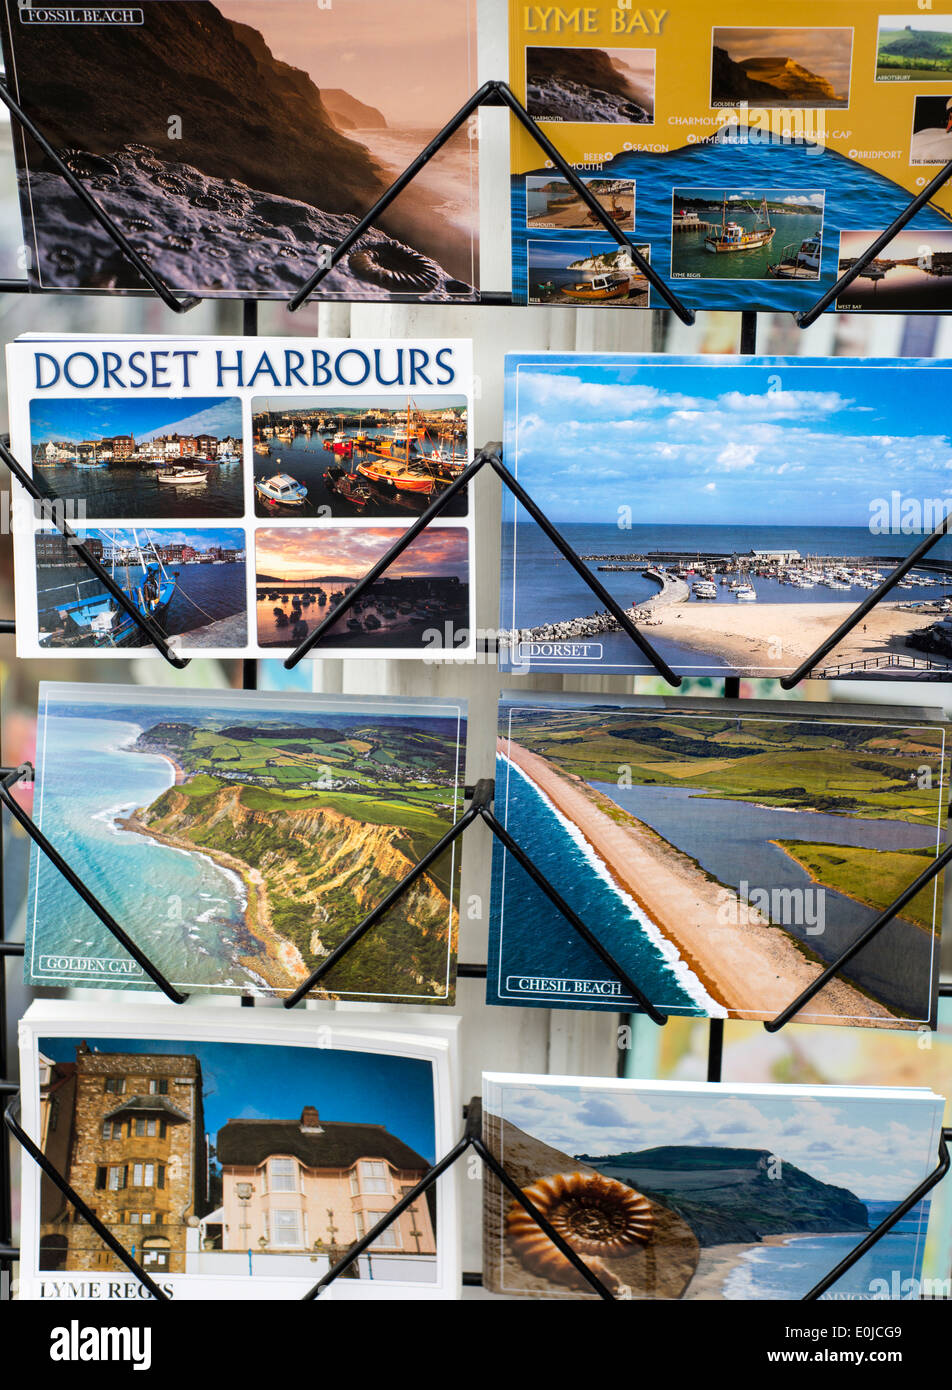 Souvenir postcards of Dorset in England - Stock Image